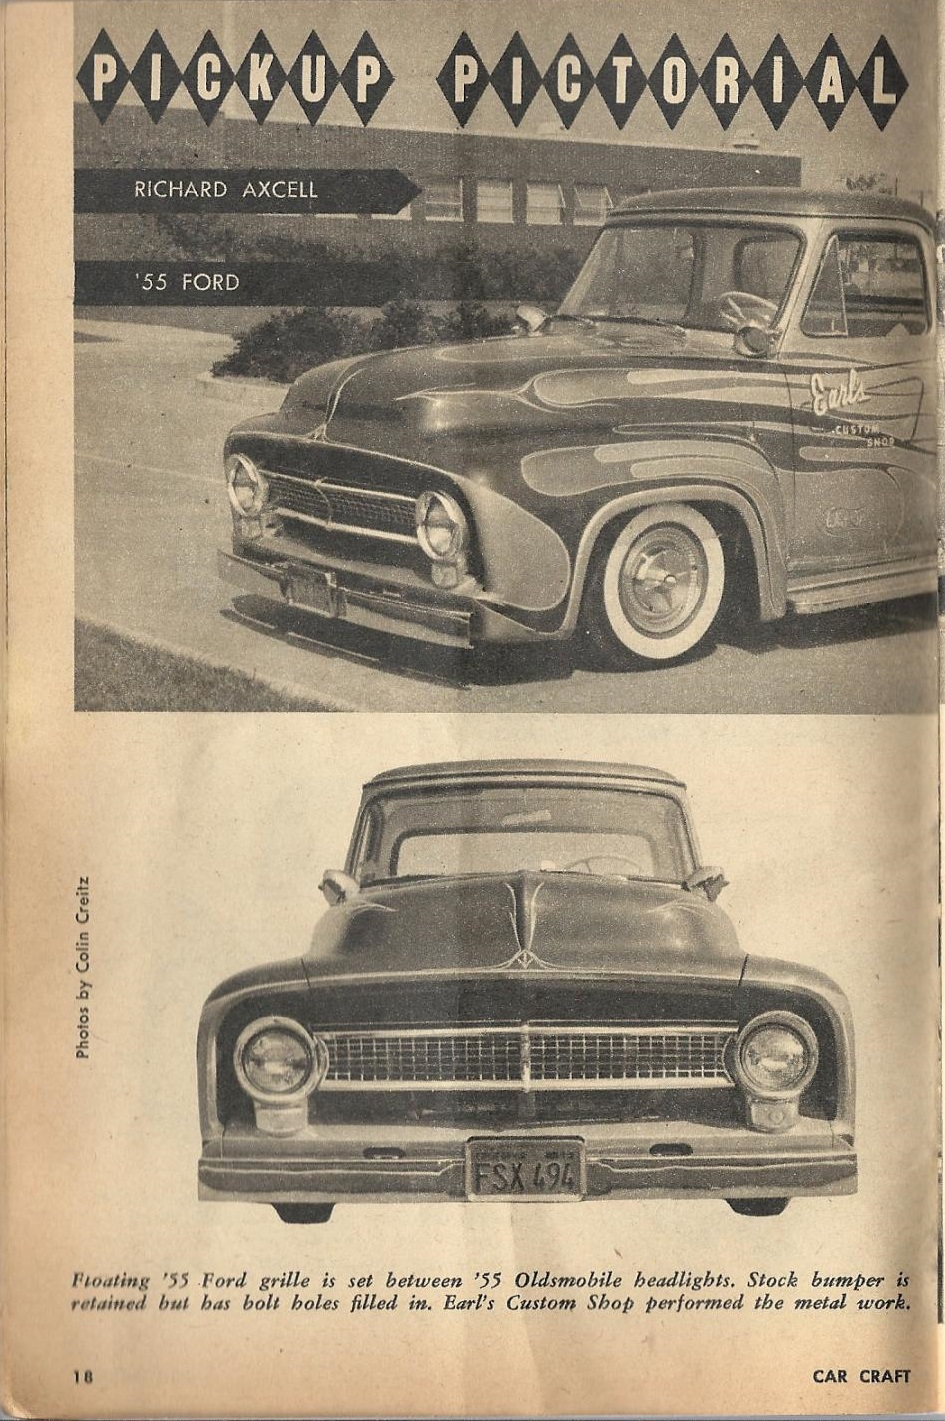 Car Craft - Special Pick Up June 1959 - Pick up Pictorial 1821